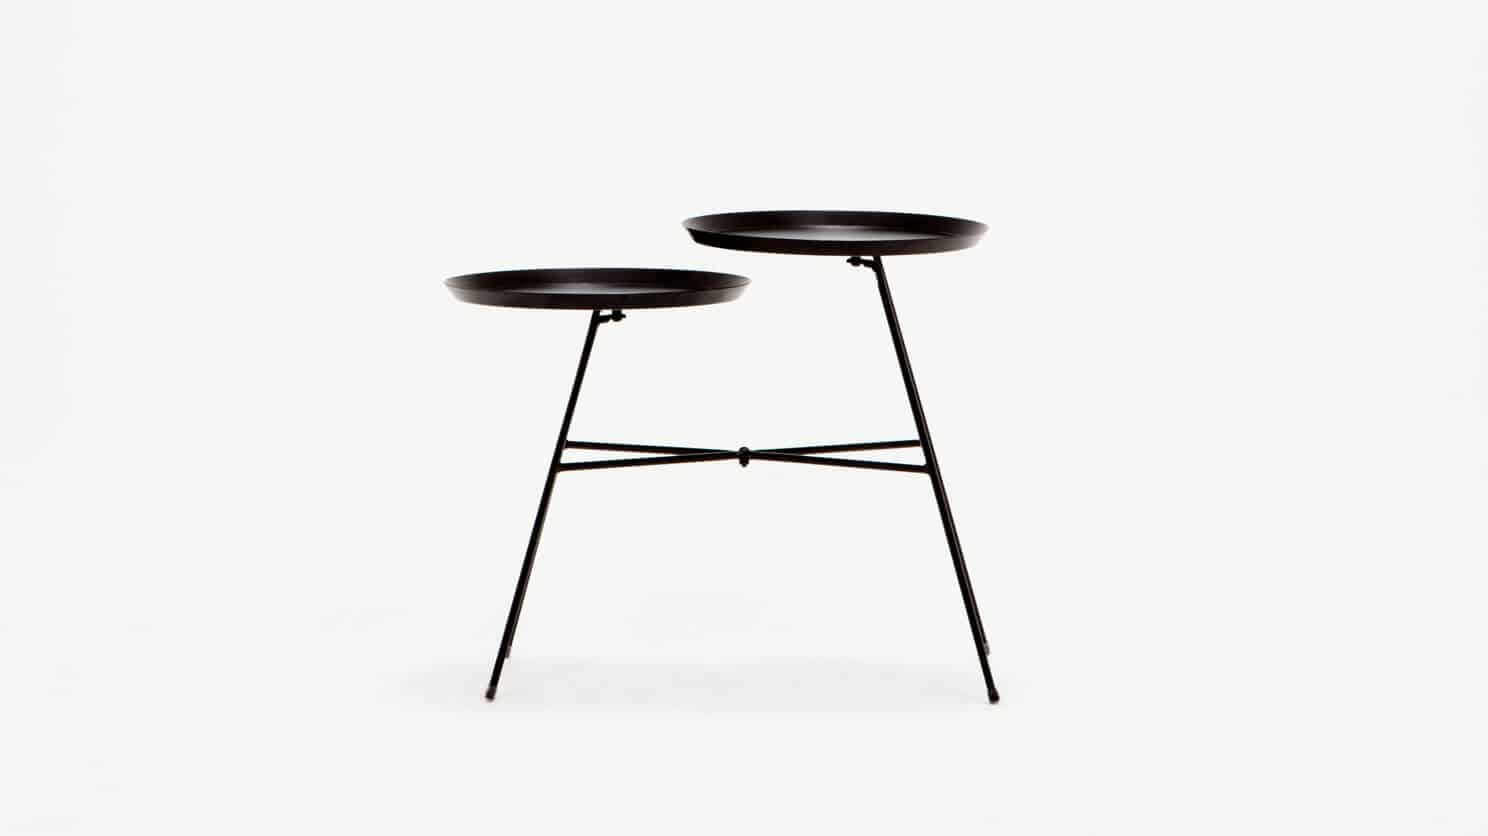 3020 703 1 4 end tables peggy side table front 02